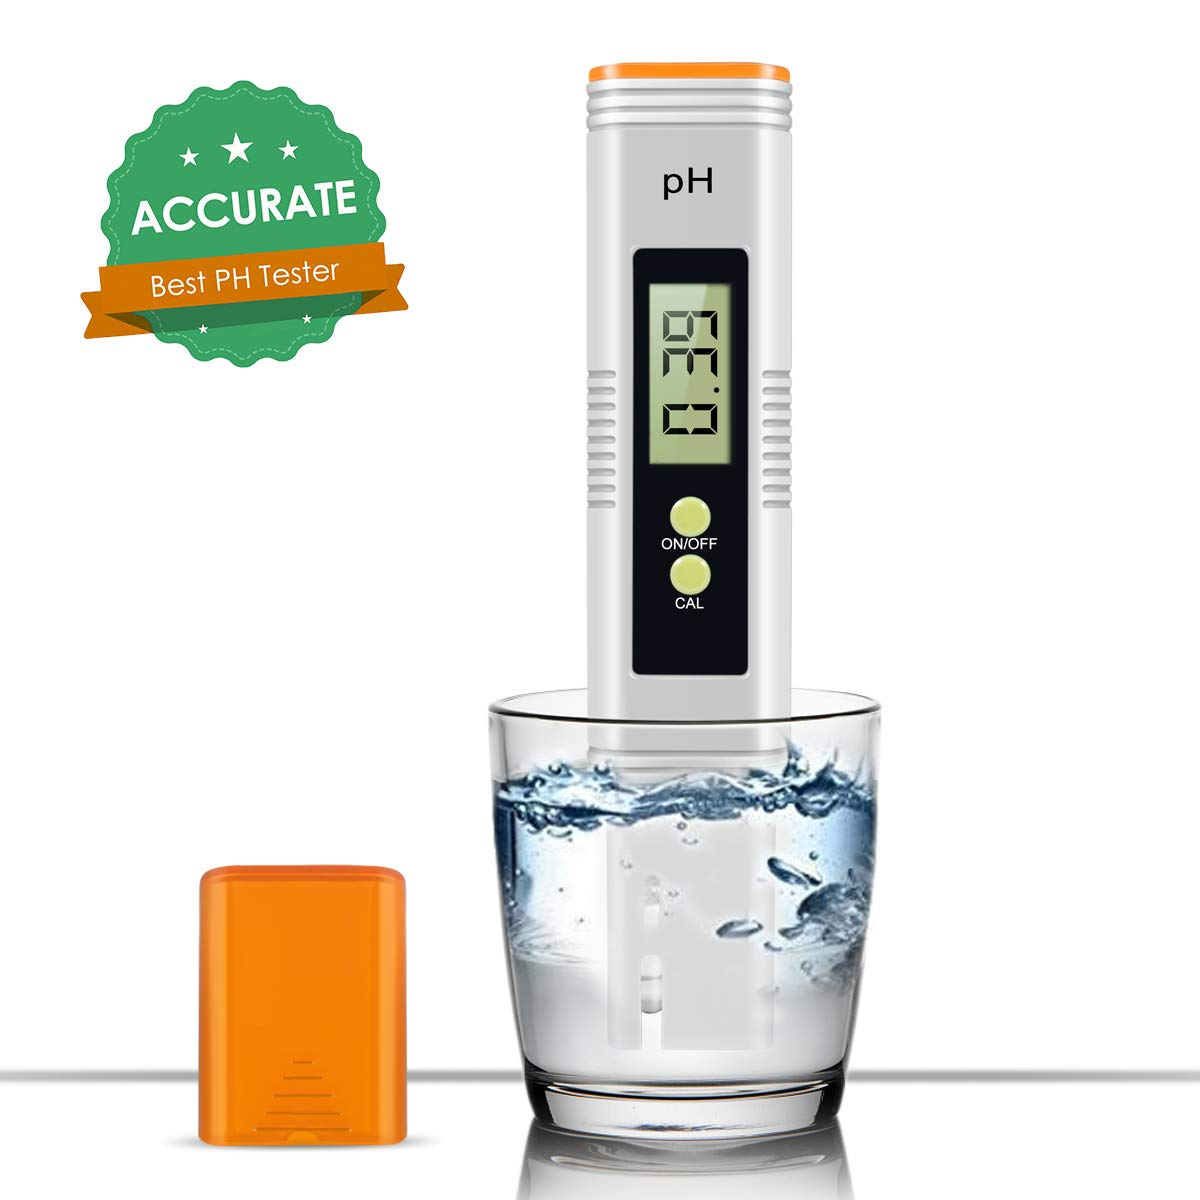 Digital PH Meter, 0.01 PH High Accuracy Pocket Size PH Meter/PH Tester with 0-14.0 Measuring Range, Water Quality Tester for Household Drinking Water, Swimming Pools, Aquarium by MiToo